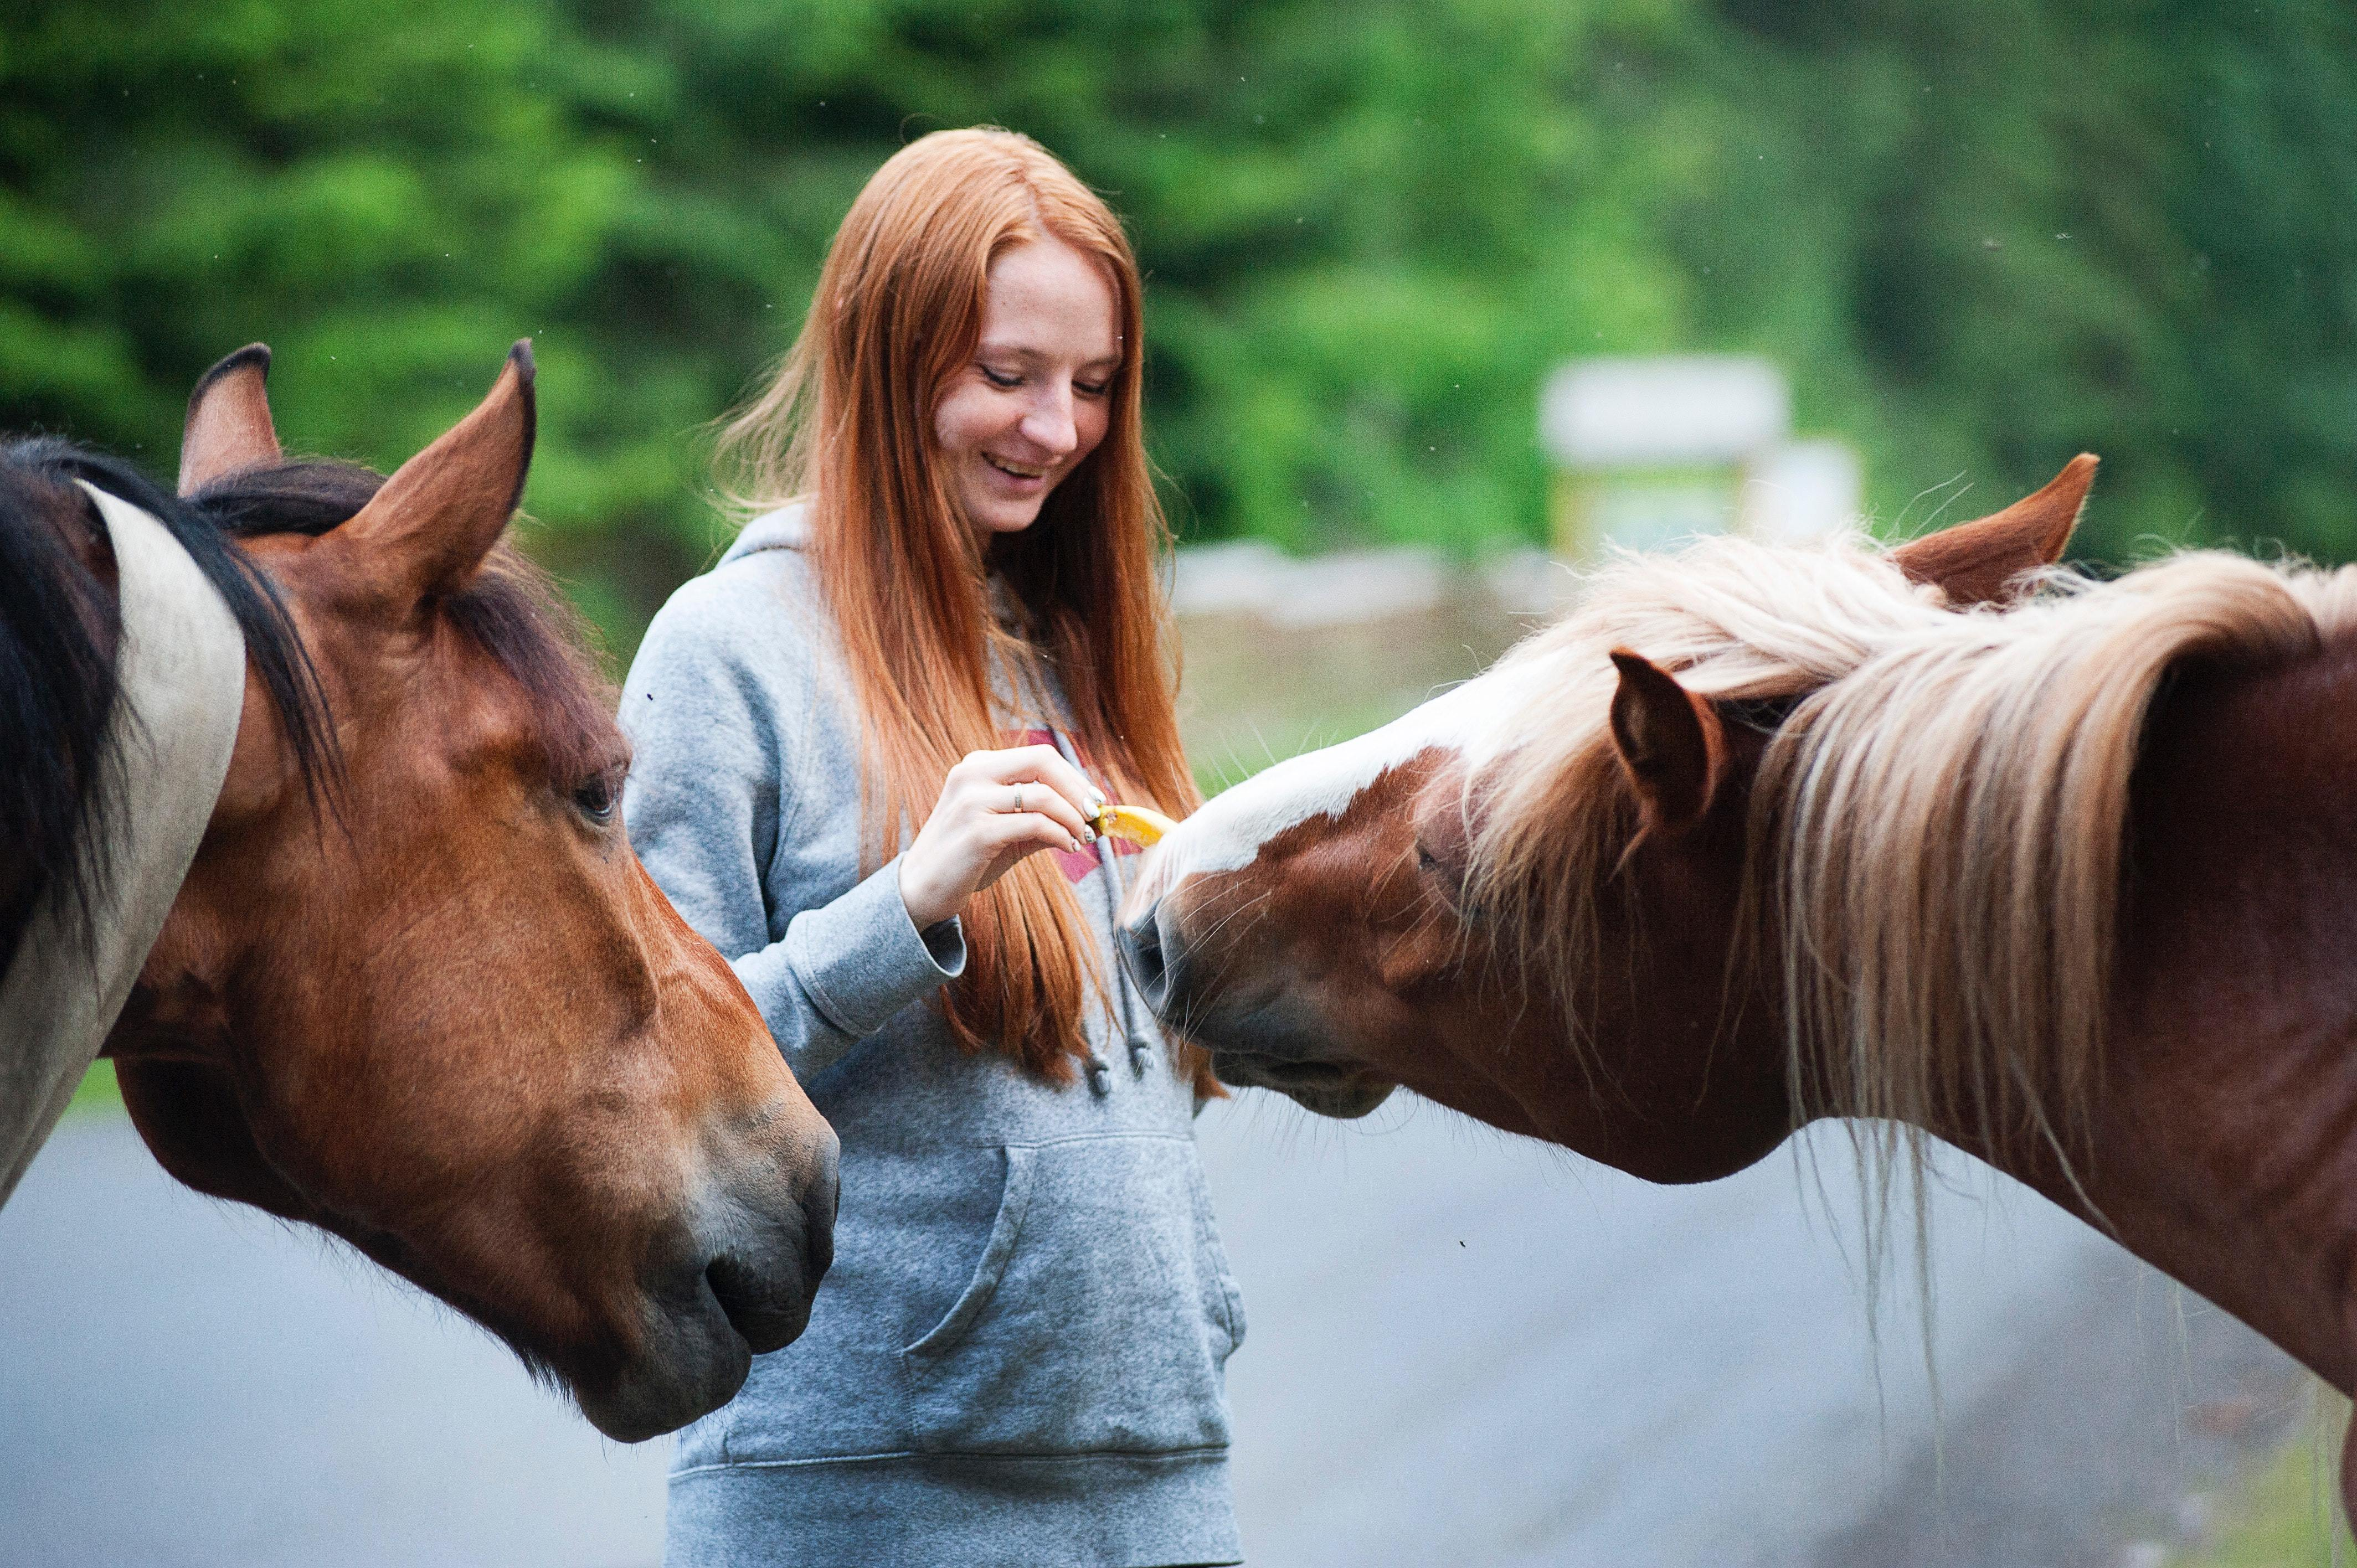 woman with red hair caring for two horses